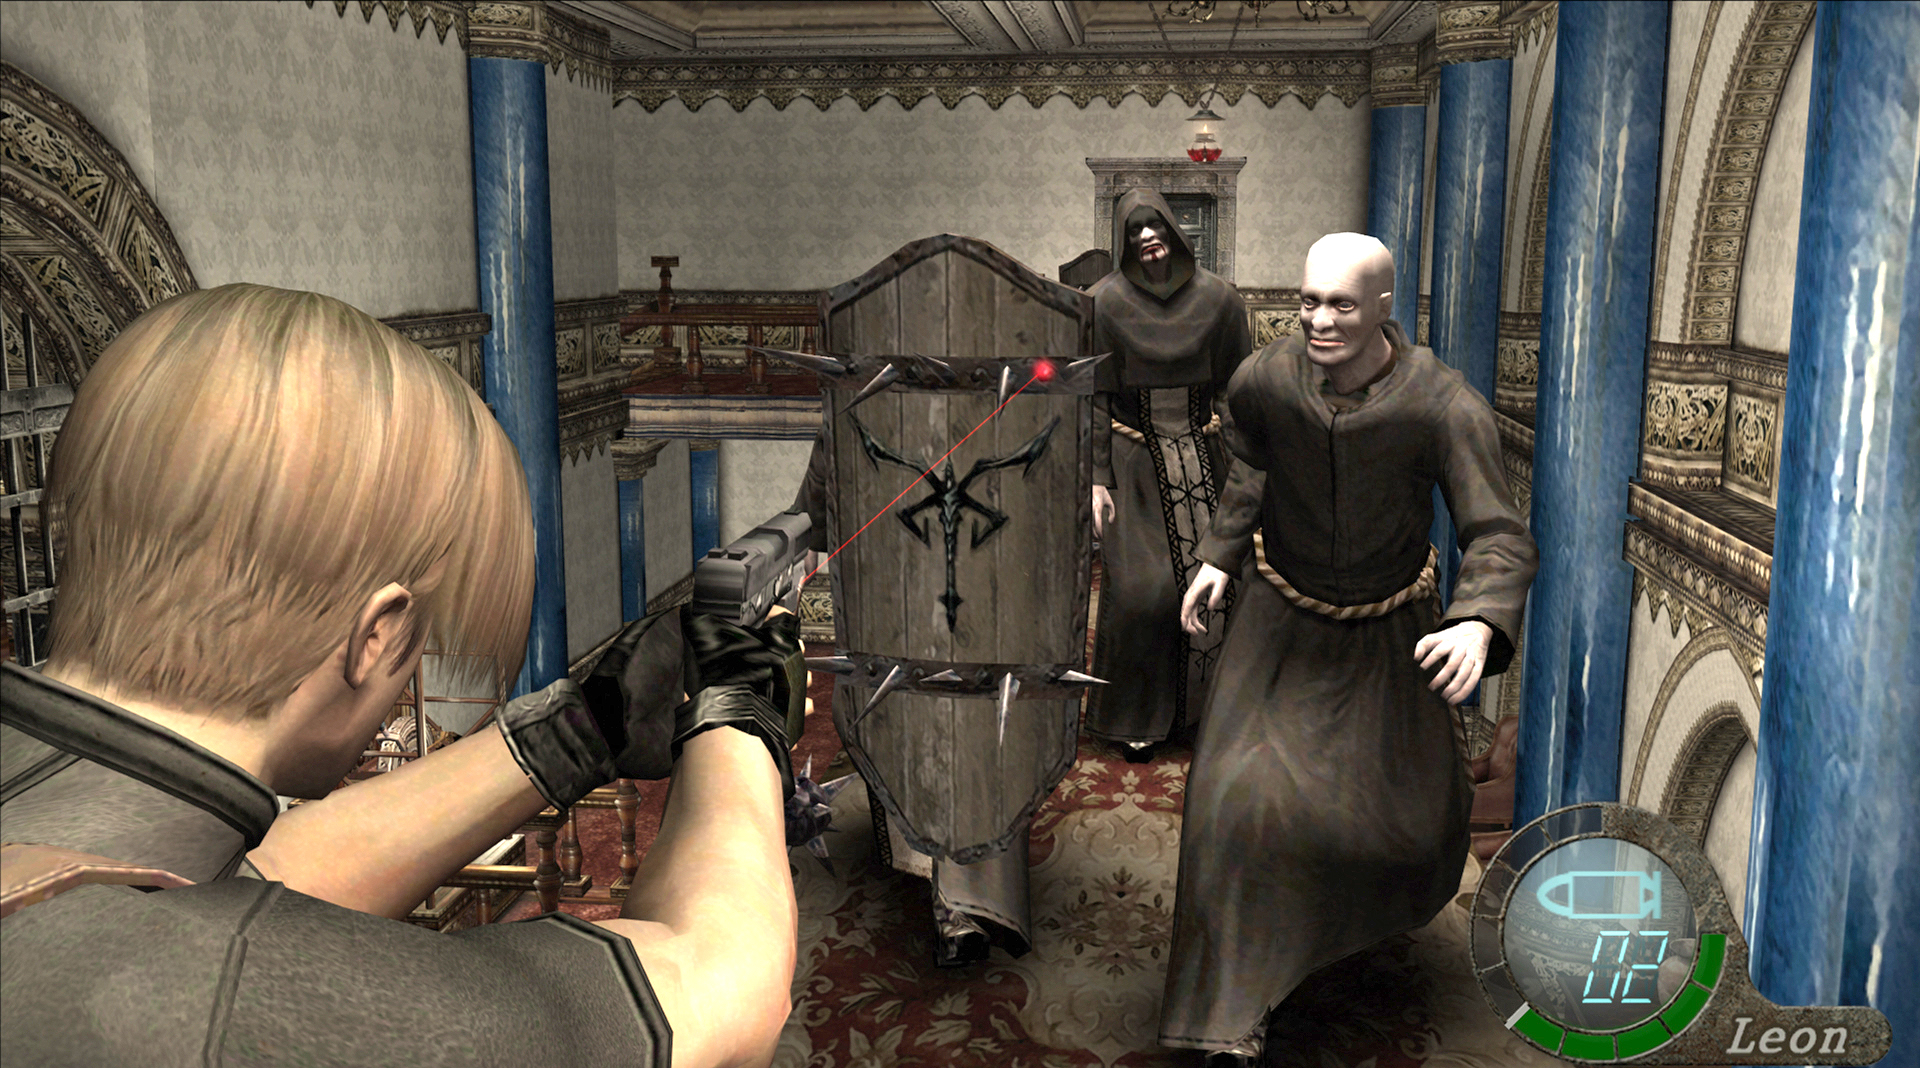 resident evil 4 / biohazard 4 - Ultimate HD Edition [PC PS4 XONE] Ss_254ff088257d644c493be6735bc75caf0f8930c7